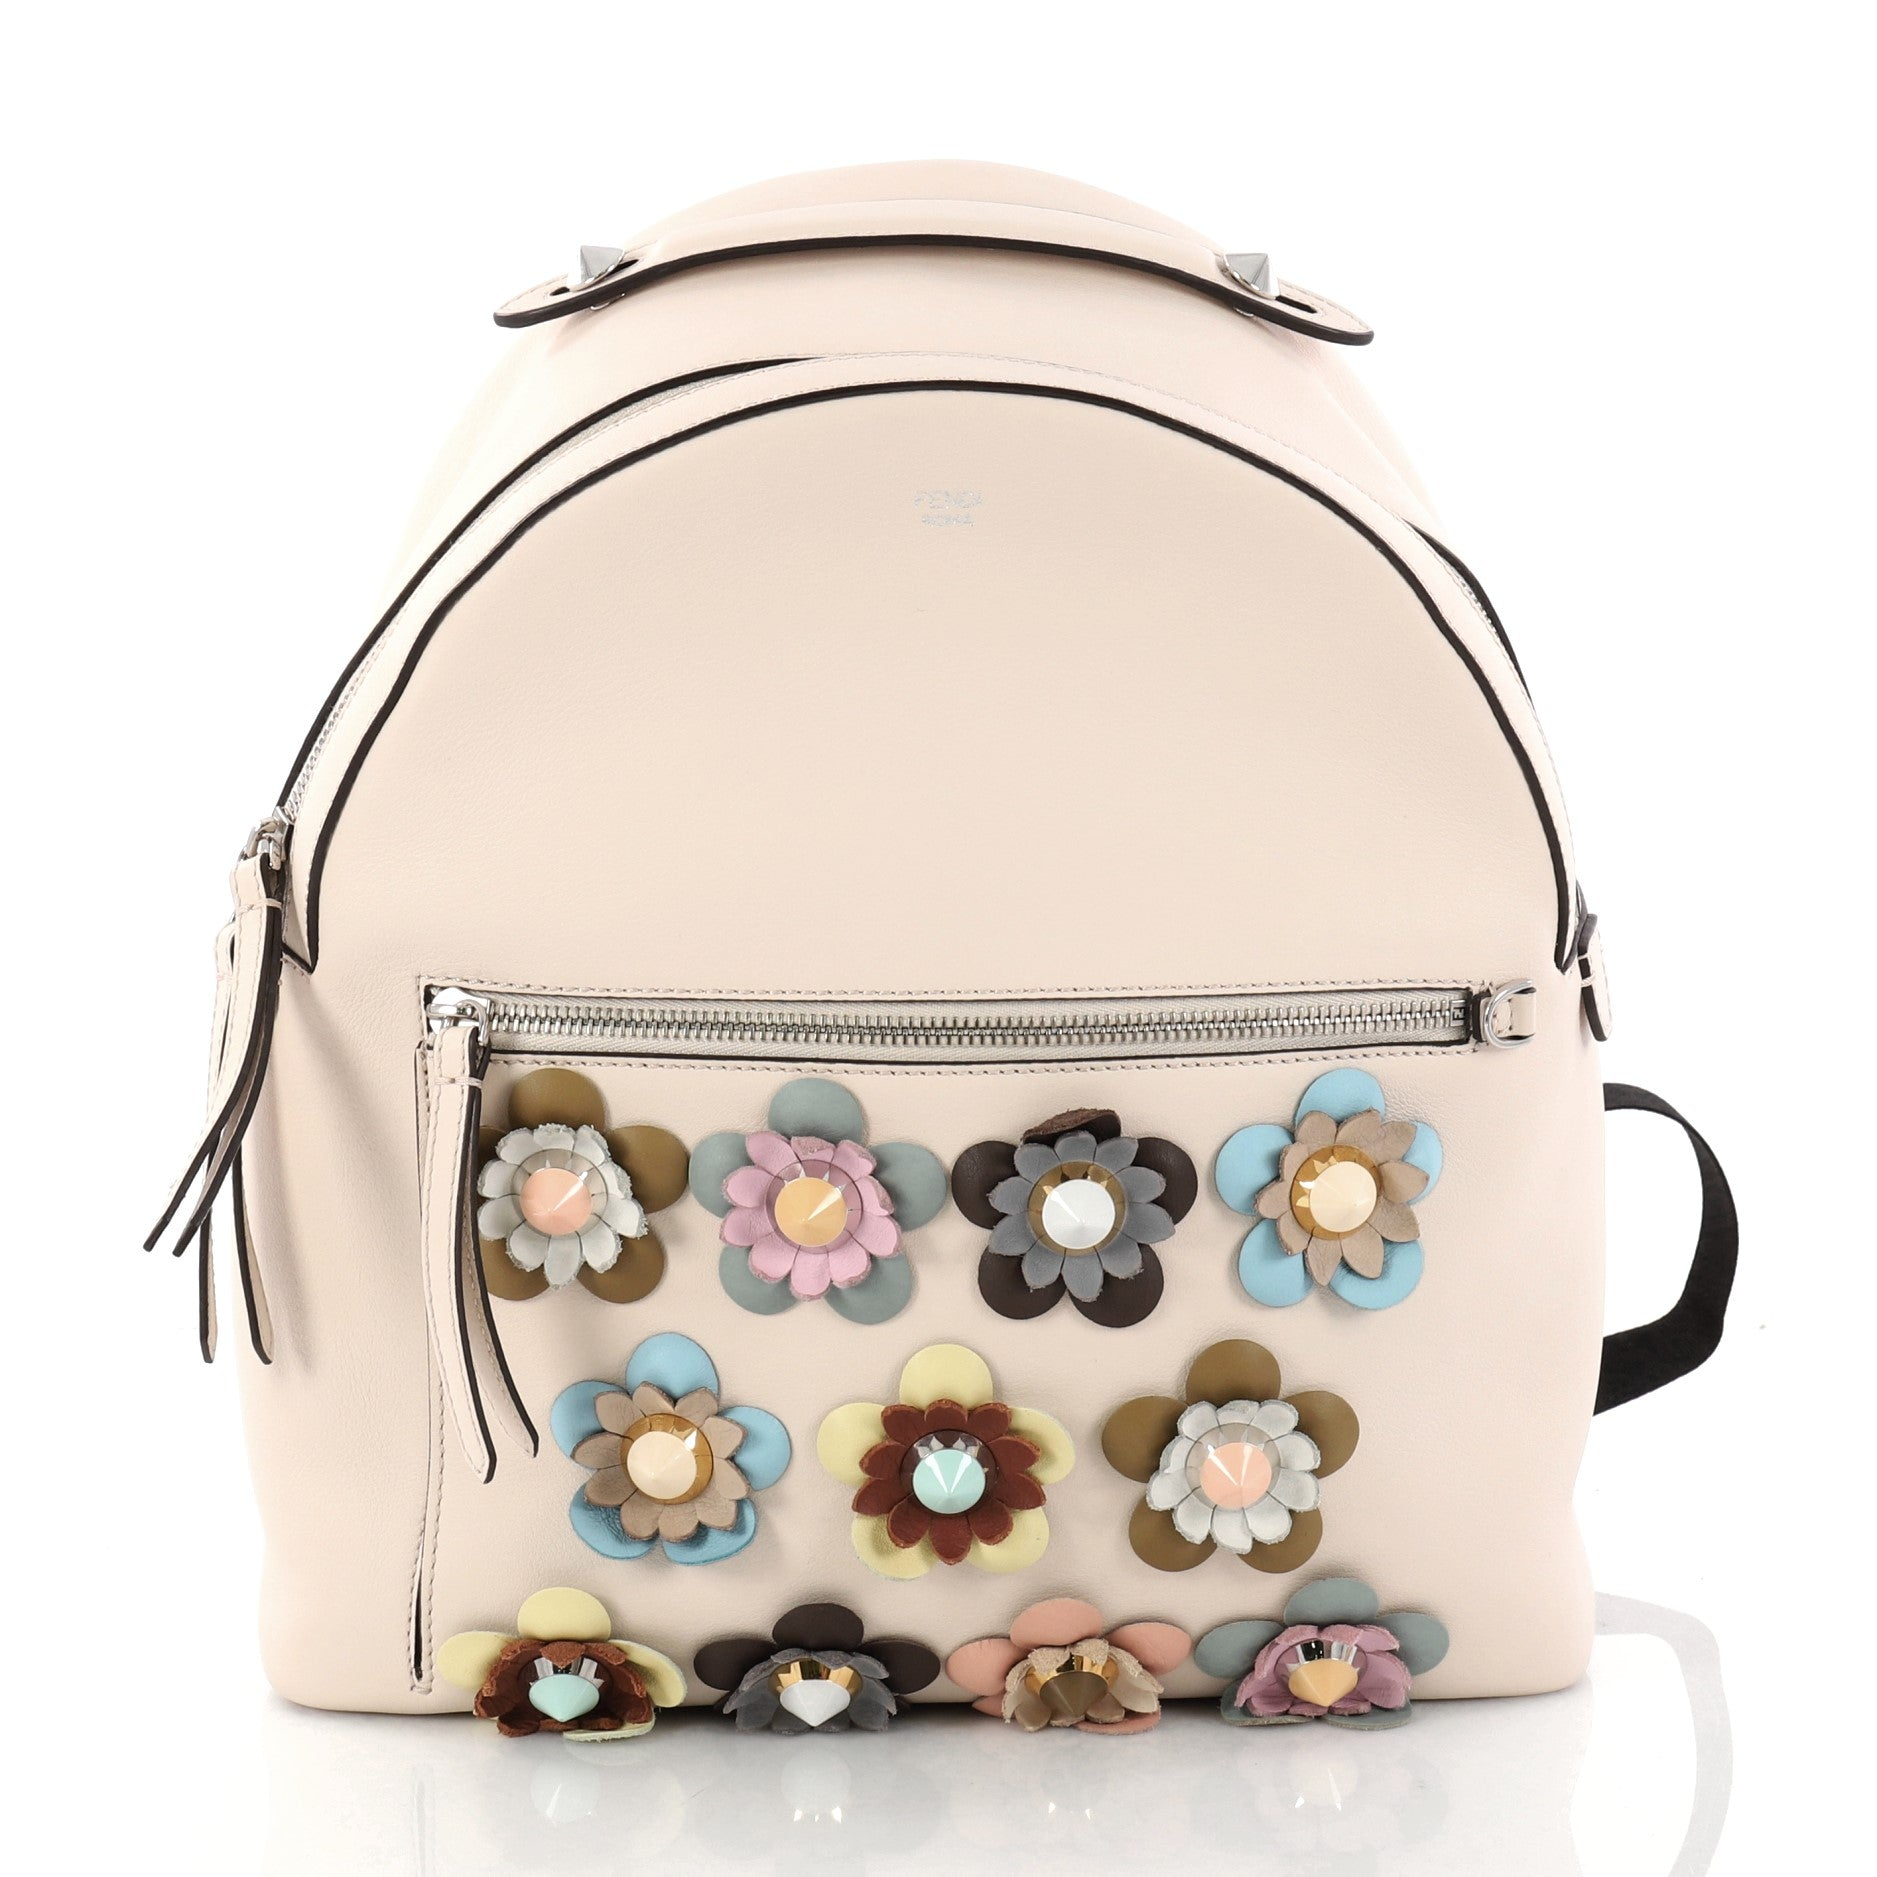 By The Way Flowerland Backpack Embellished Leather Medium